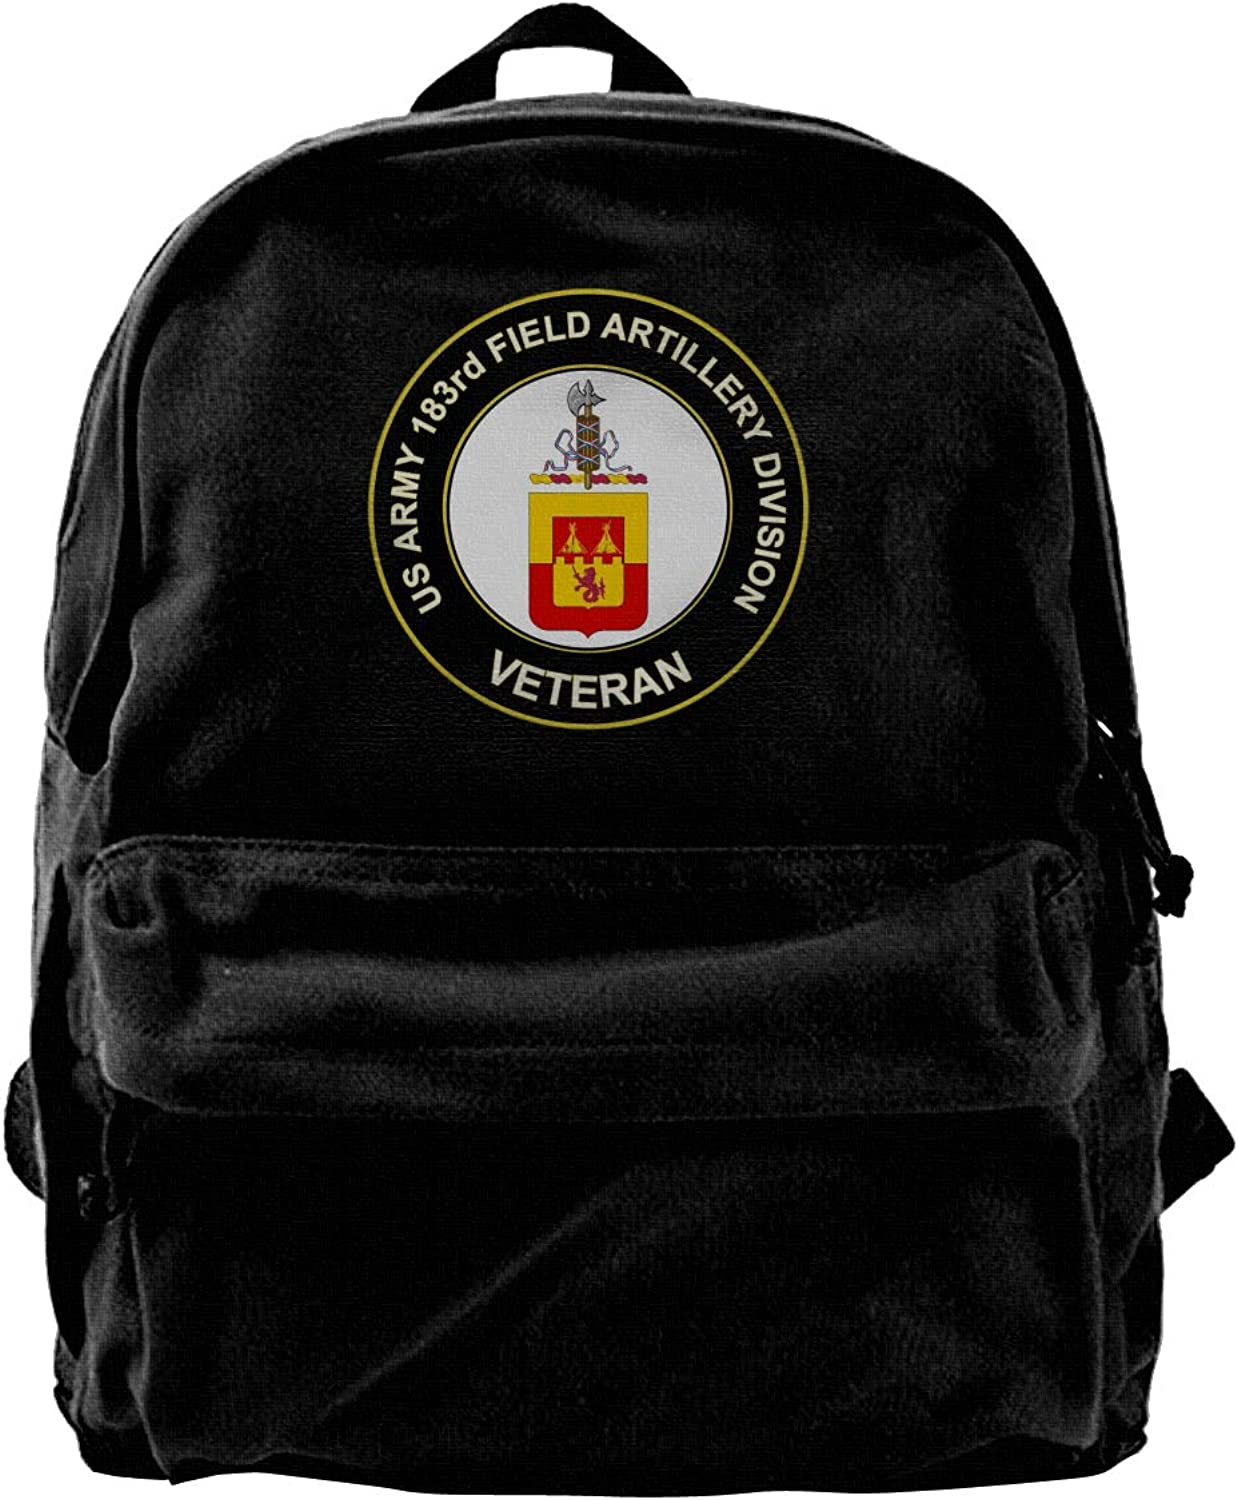 US Army Veteran 183rd Field Artillery Division Fashion Lightweight Canvas Shoulder Backpack for Women & Men